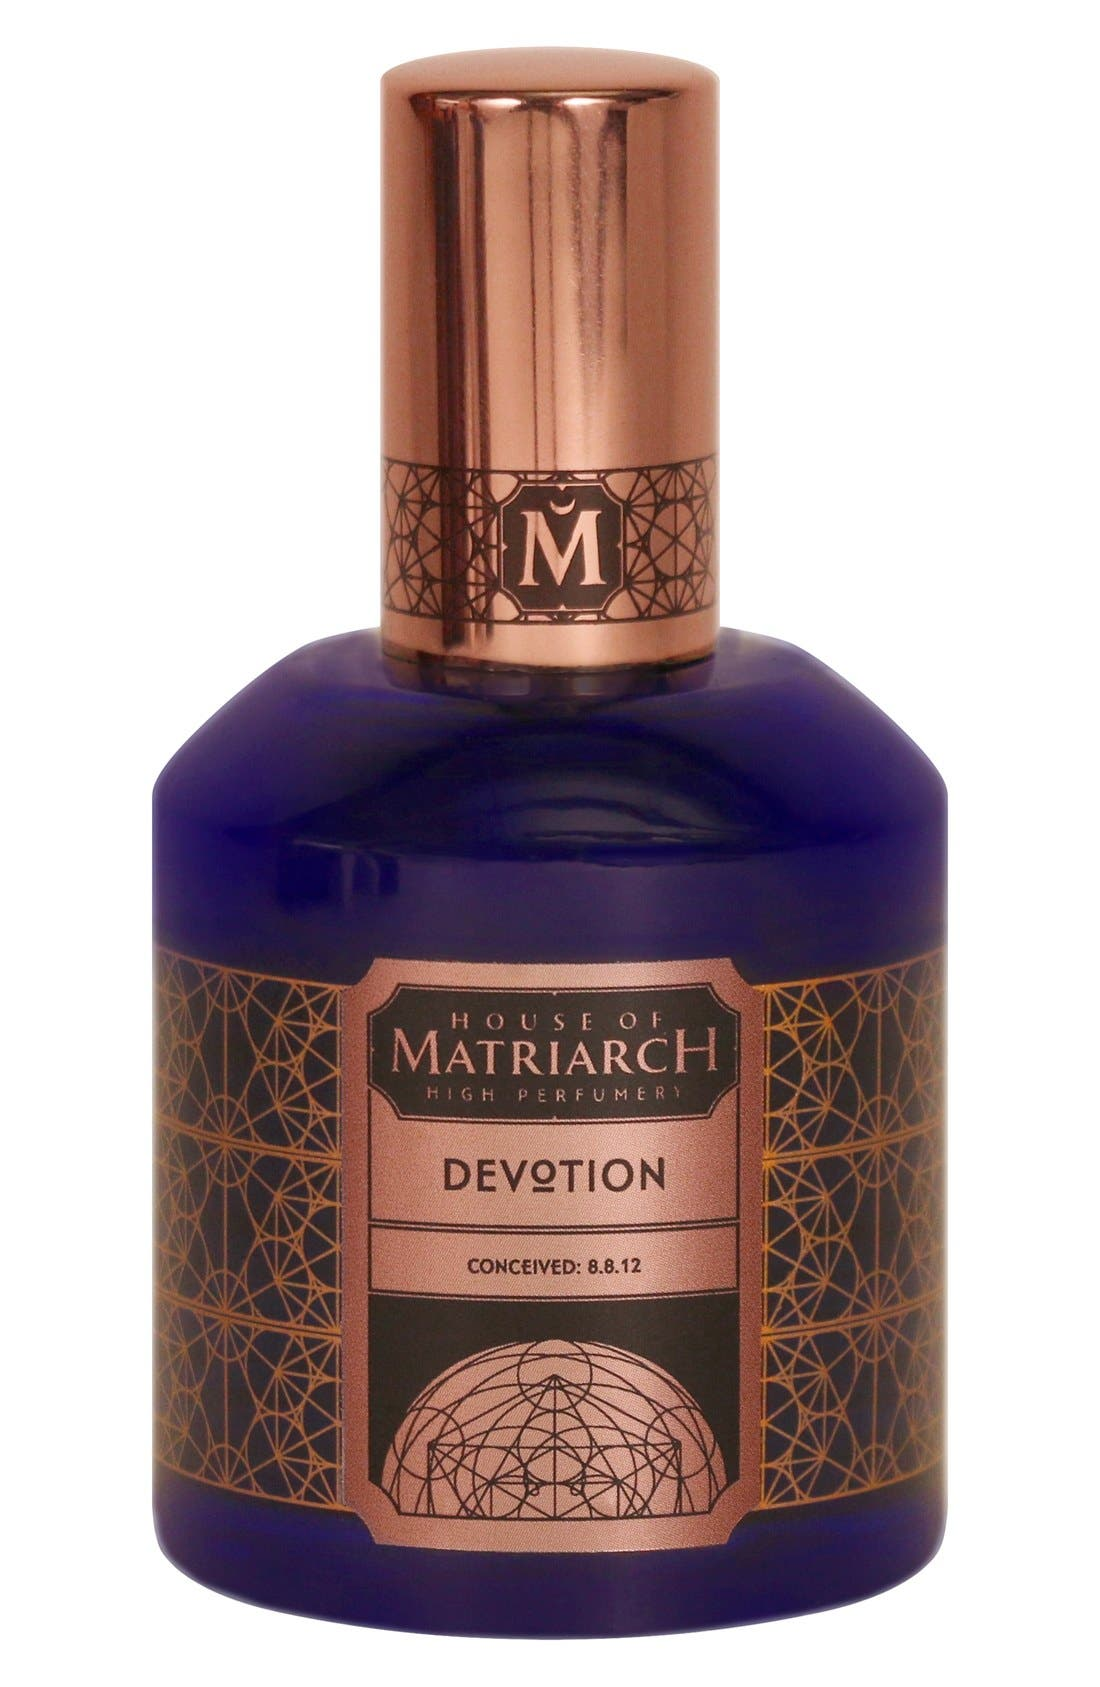 House of Matriarch 'Devotion' Fragrance (Nordstrom Exclusive)